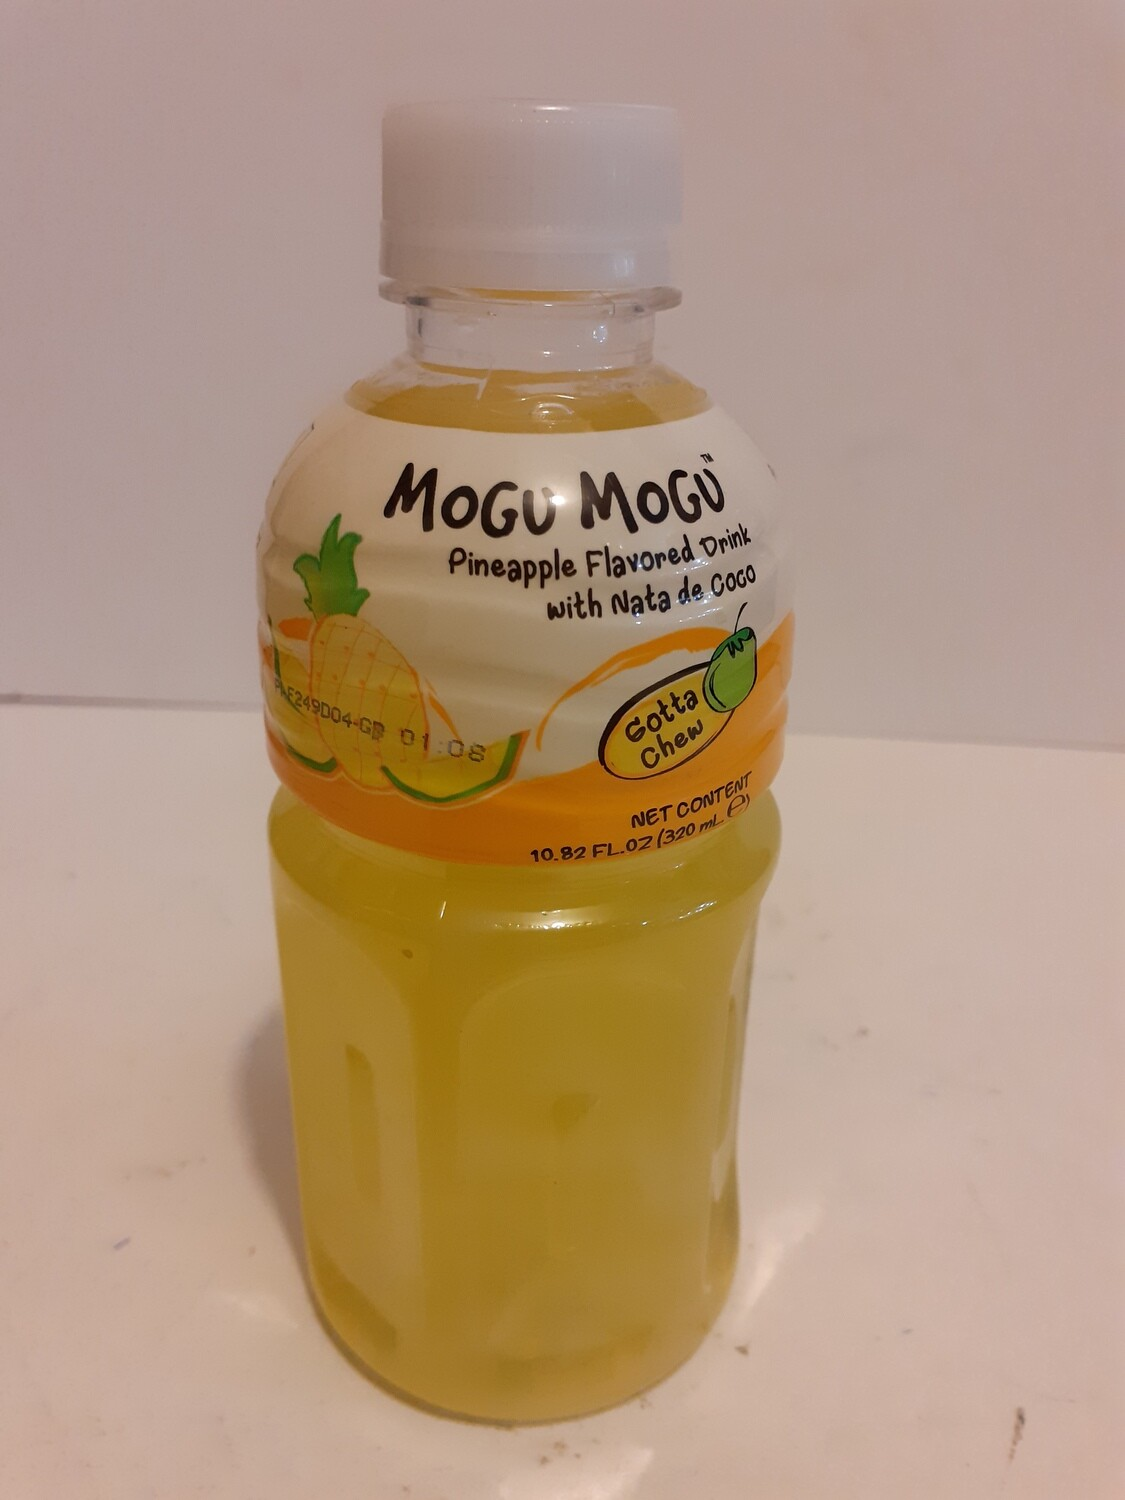 Pineapple flavored Drink with Nata Coco 320 ml